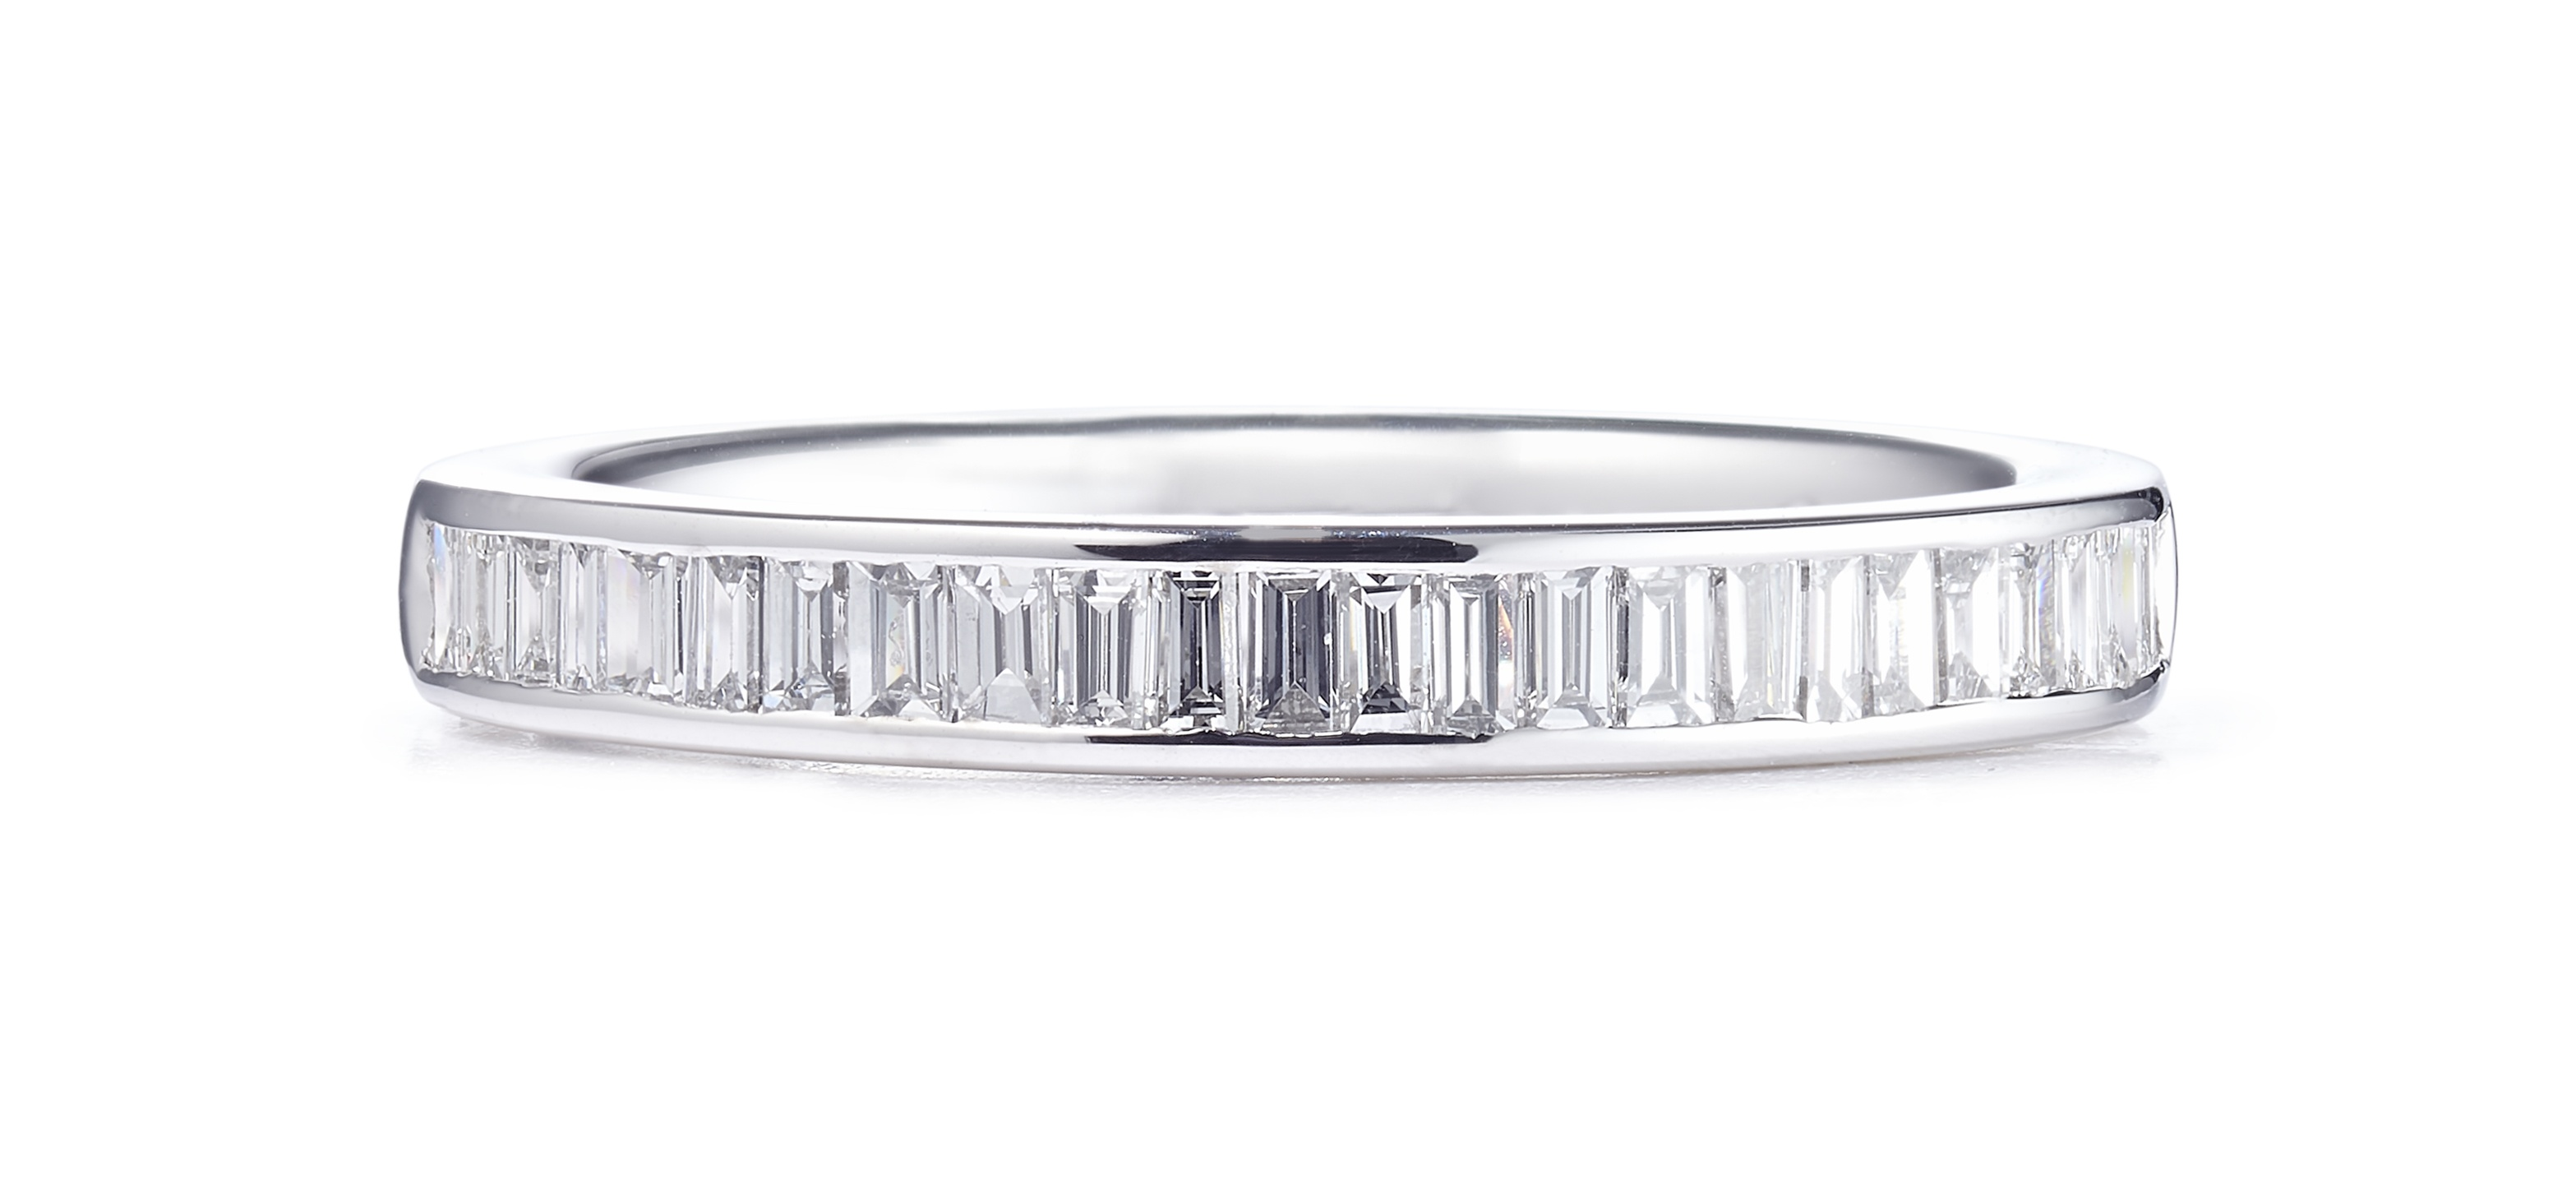 0.54ct 18ct White Gold Baguette Cut Diamond Ring – Finger Size O